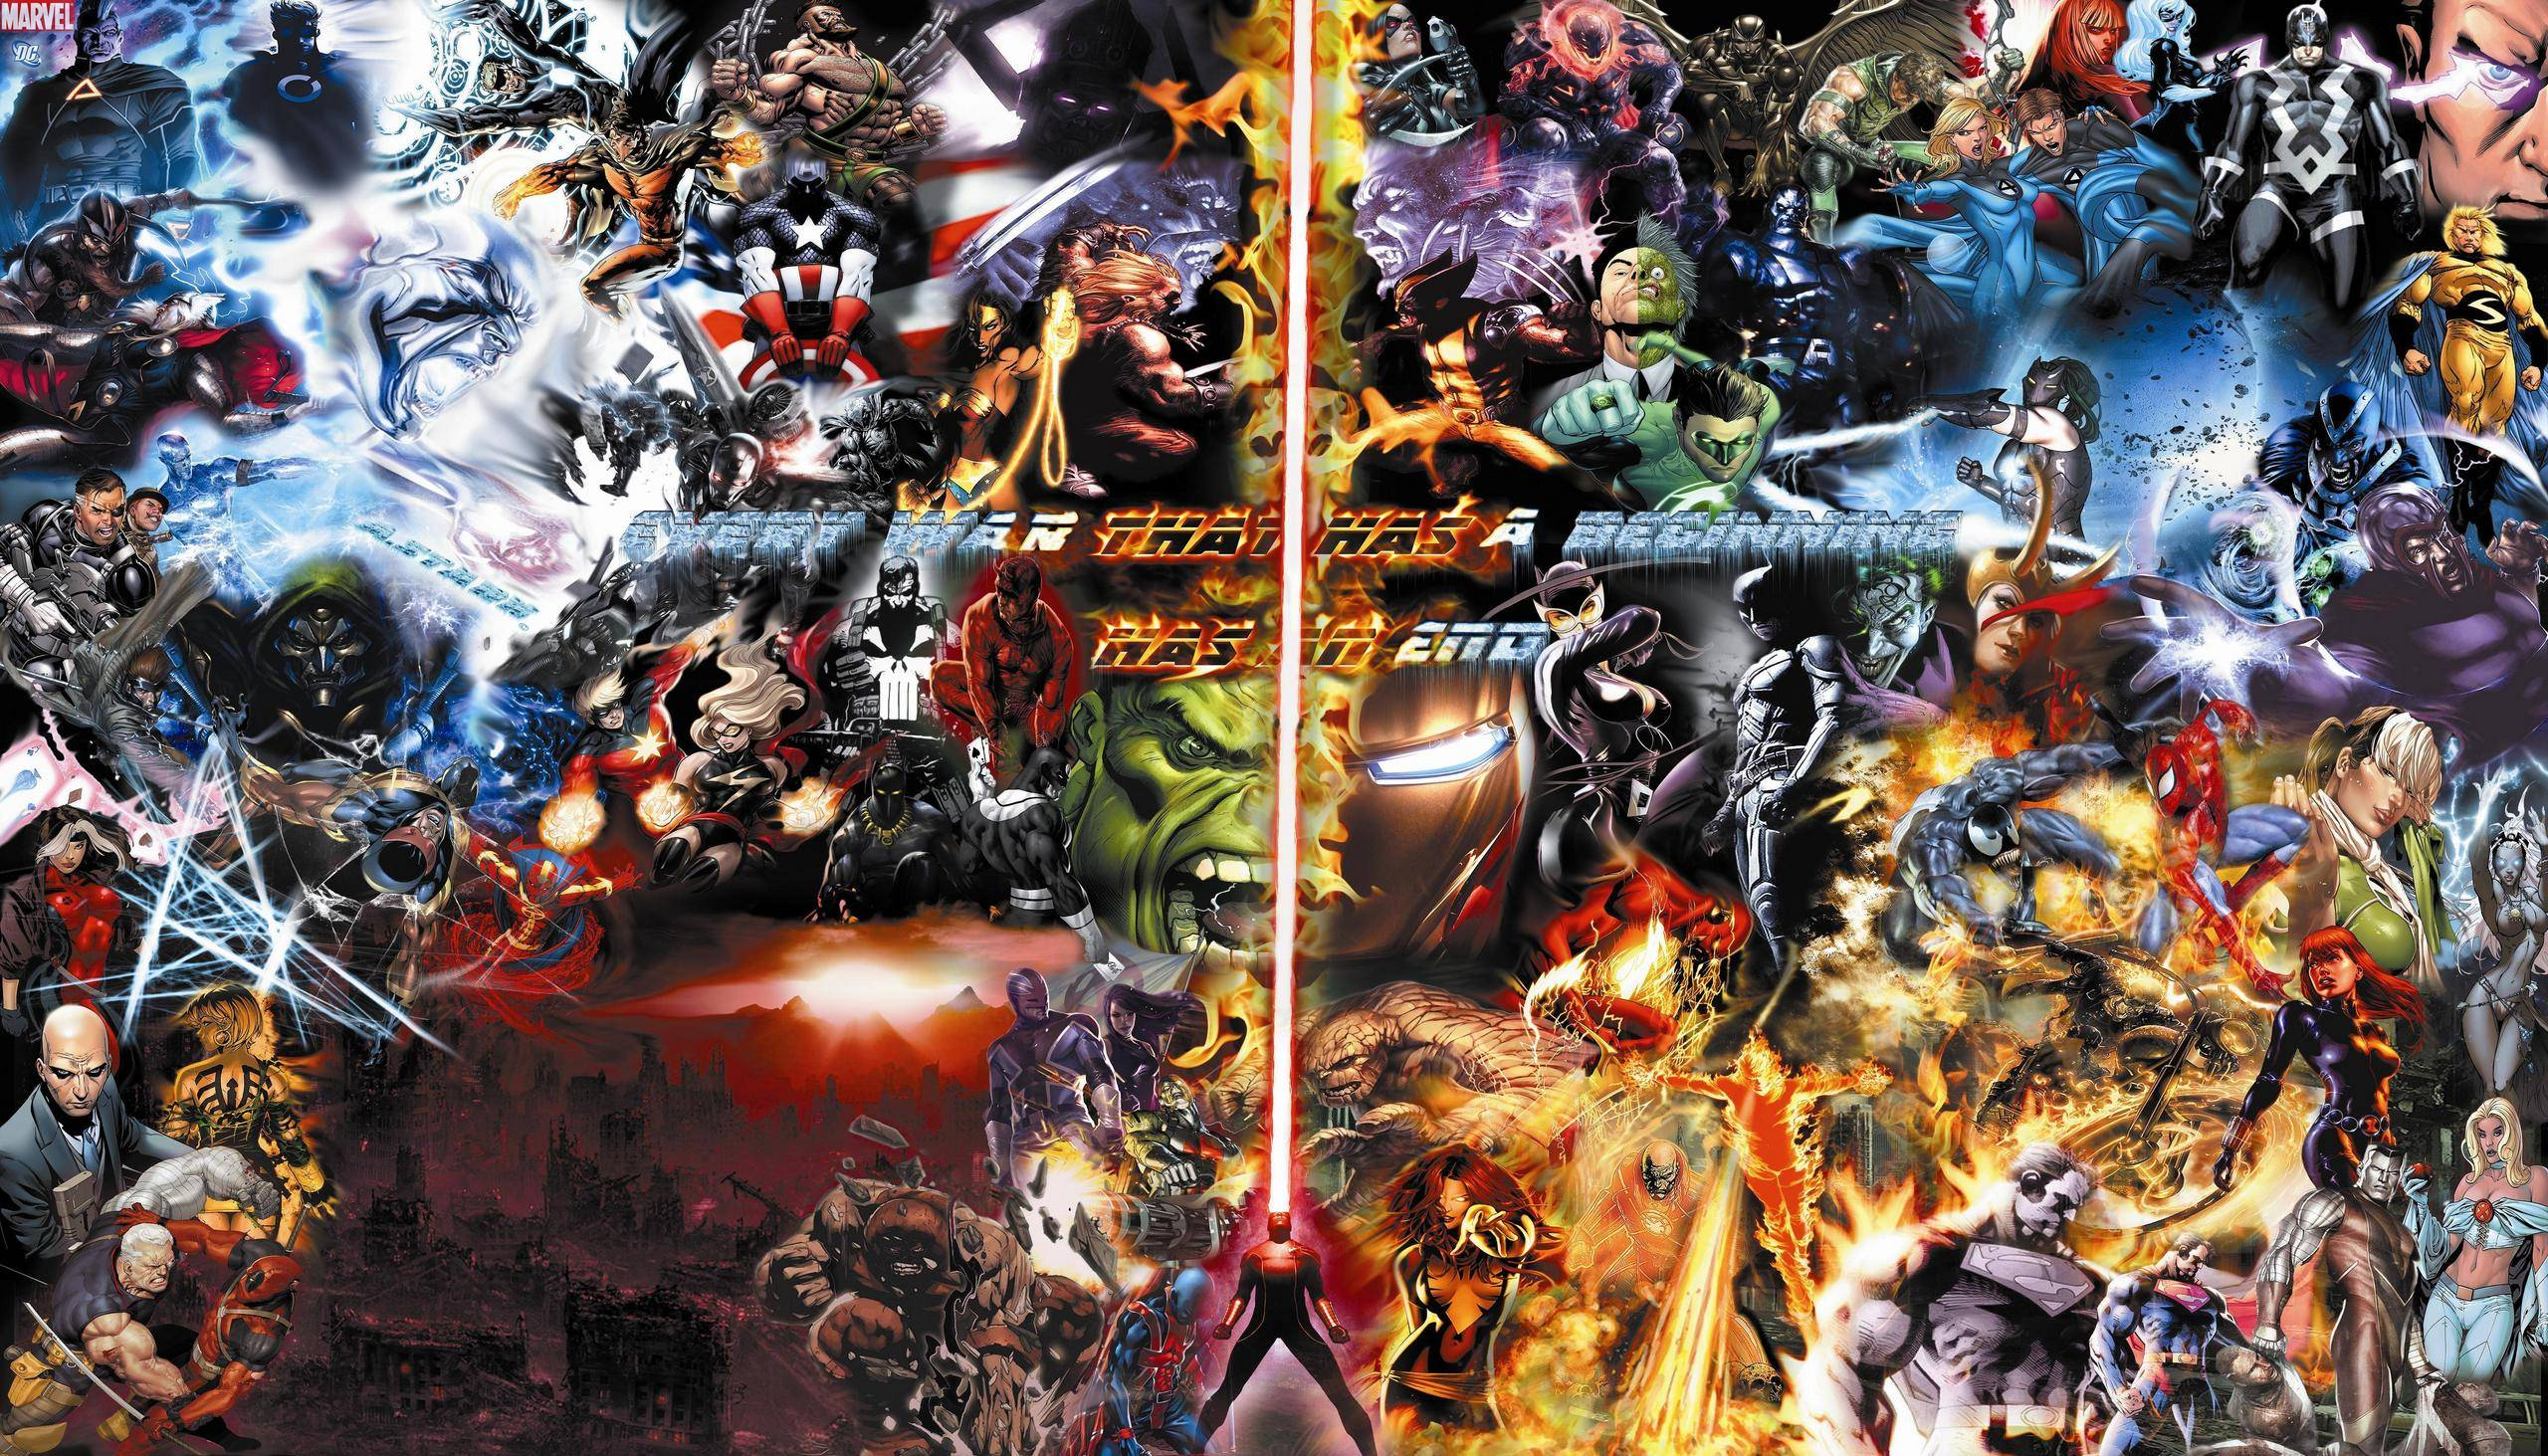 16 Most Powerful Characters In The Marvel Universe in addition Deadpool Abstract Art likewise Hulk And Agents Of Smash also Spider Man Anti Venom Vs Venom also Dark Phoenix Jean Grey Marvel Superhero 4k 5k 13495. on marvel universe superhero animals